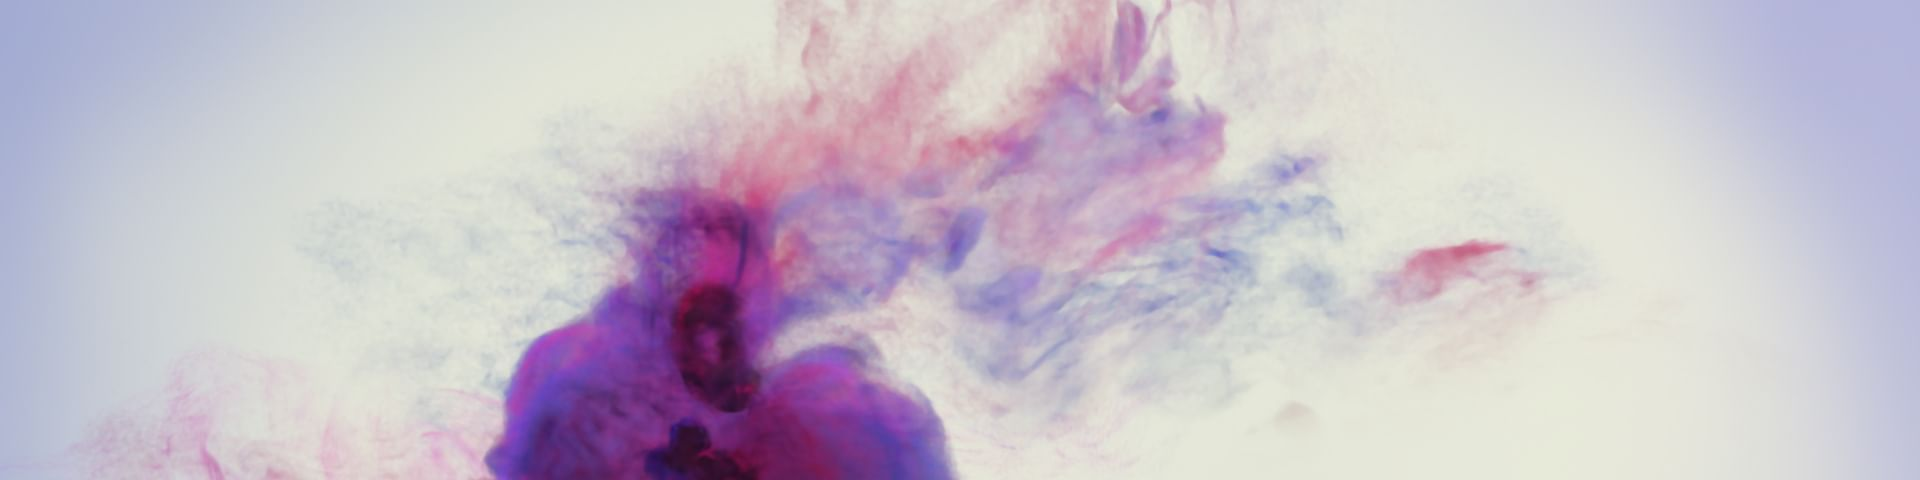 """Body and Soul"" von Oscar Micheaux"